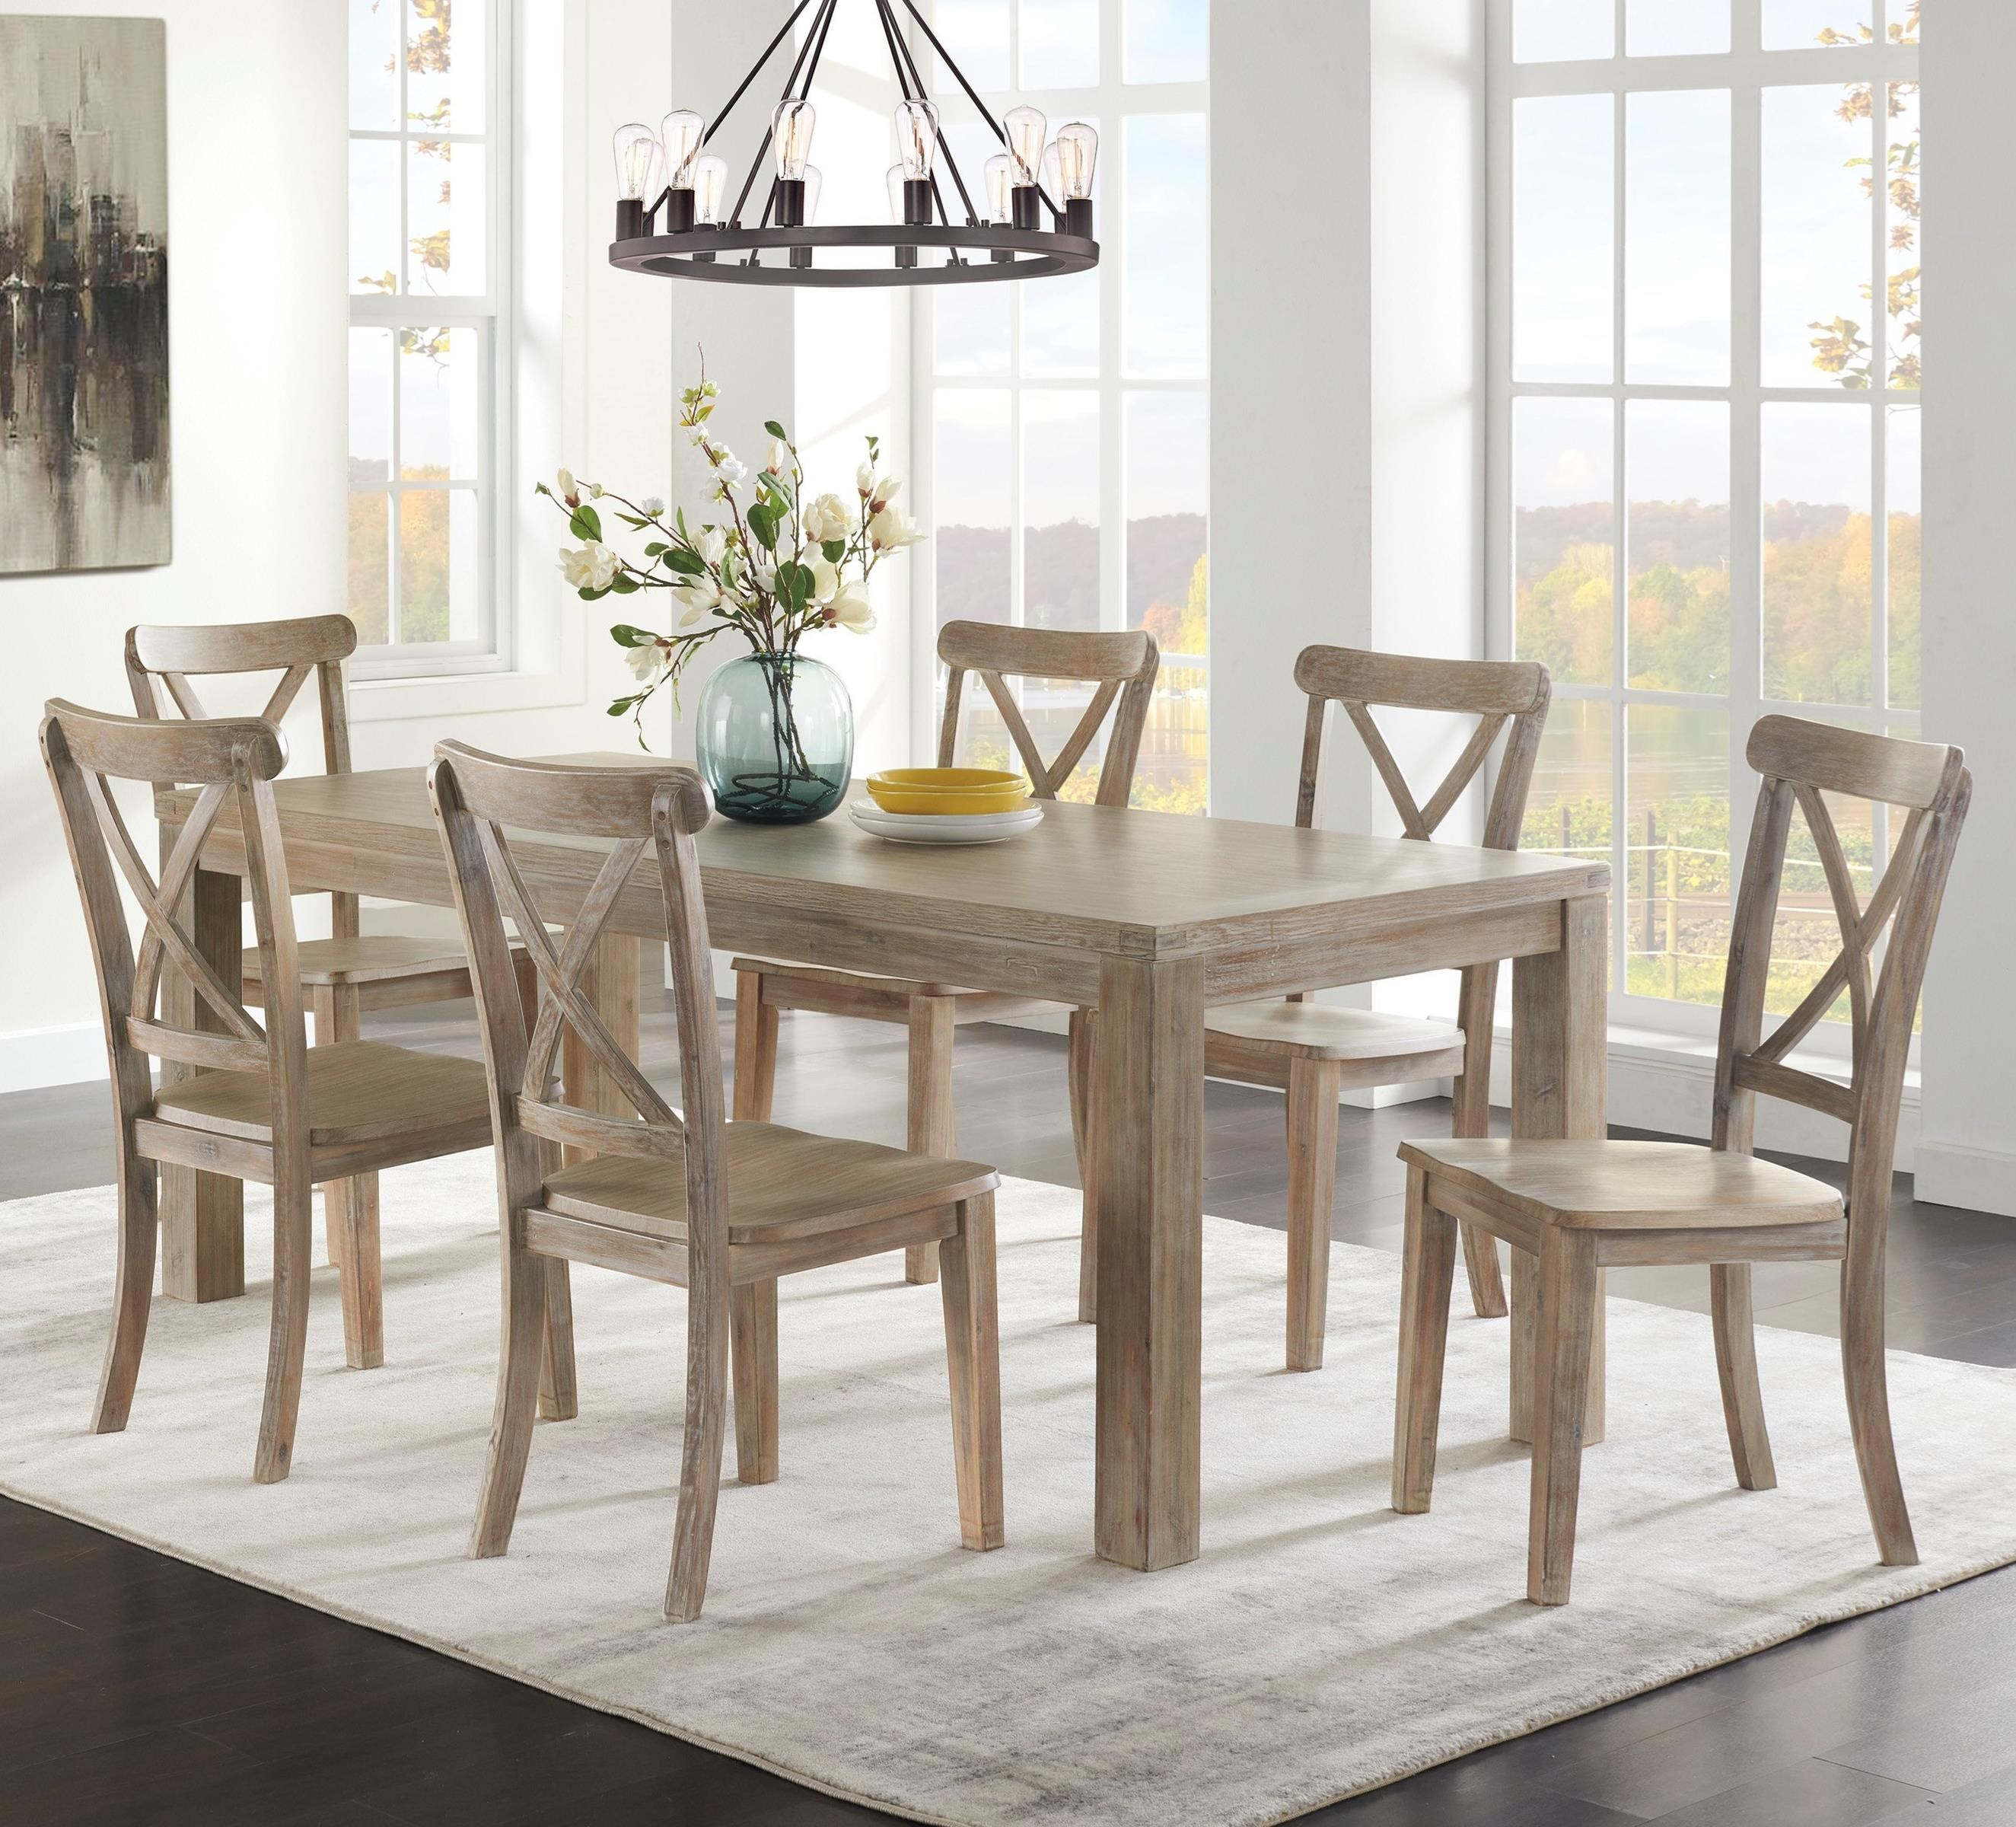 Ambrosh 7-Piece Dining Table Set by Ashley Furniture at HomeWorld Furniture